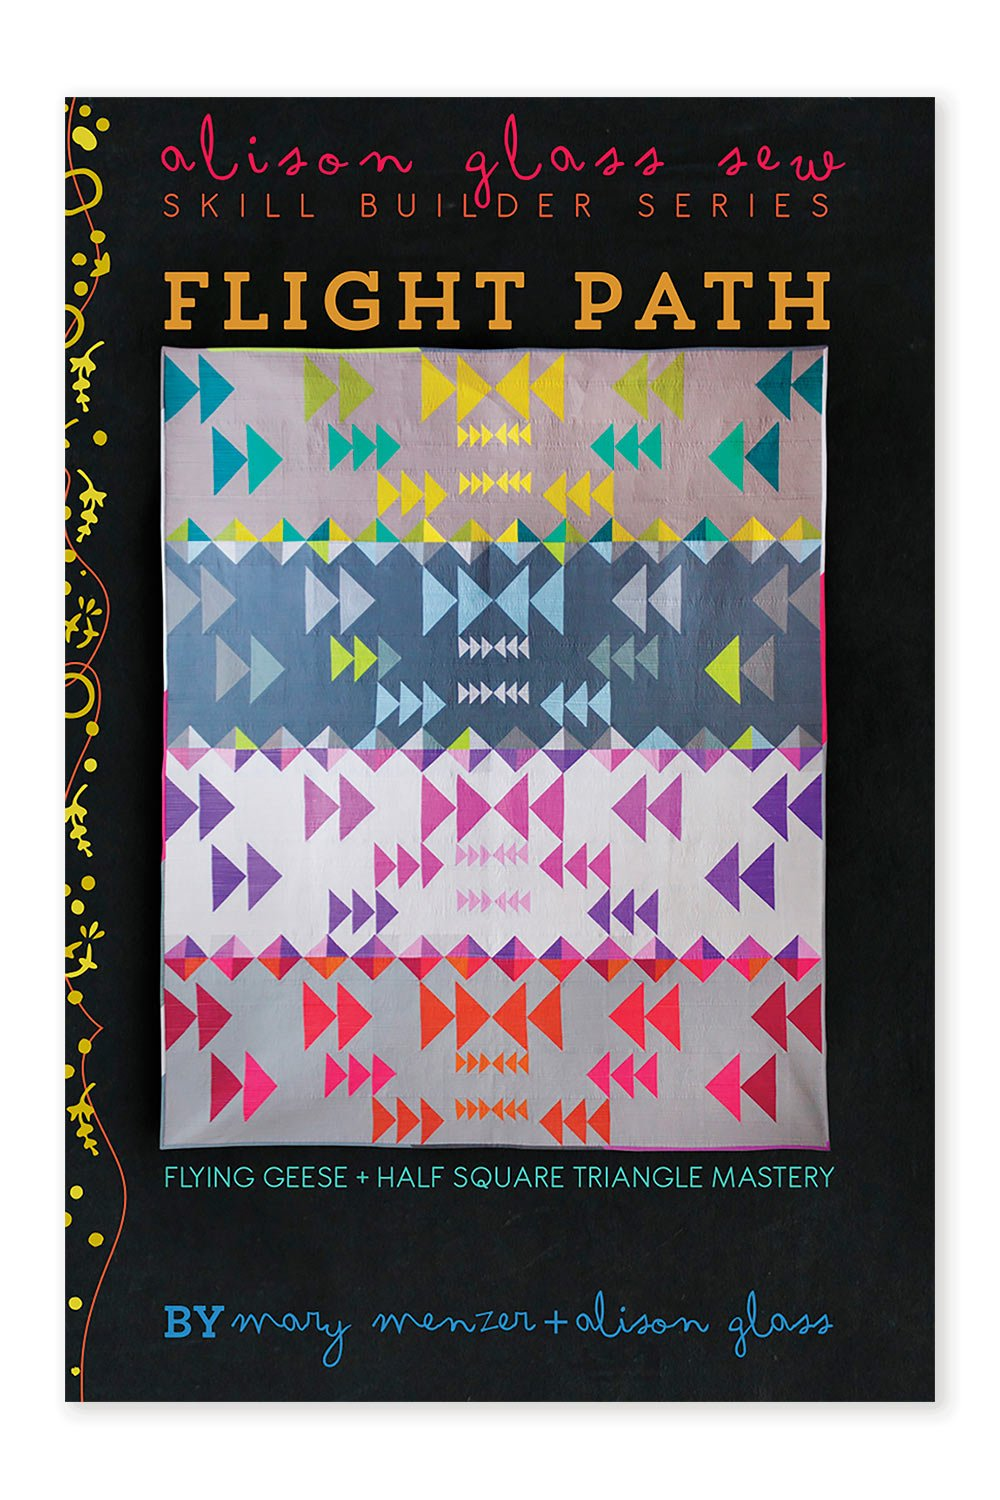 Flight Path by Alison Glass